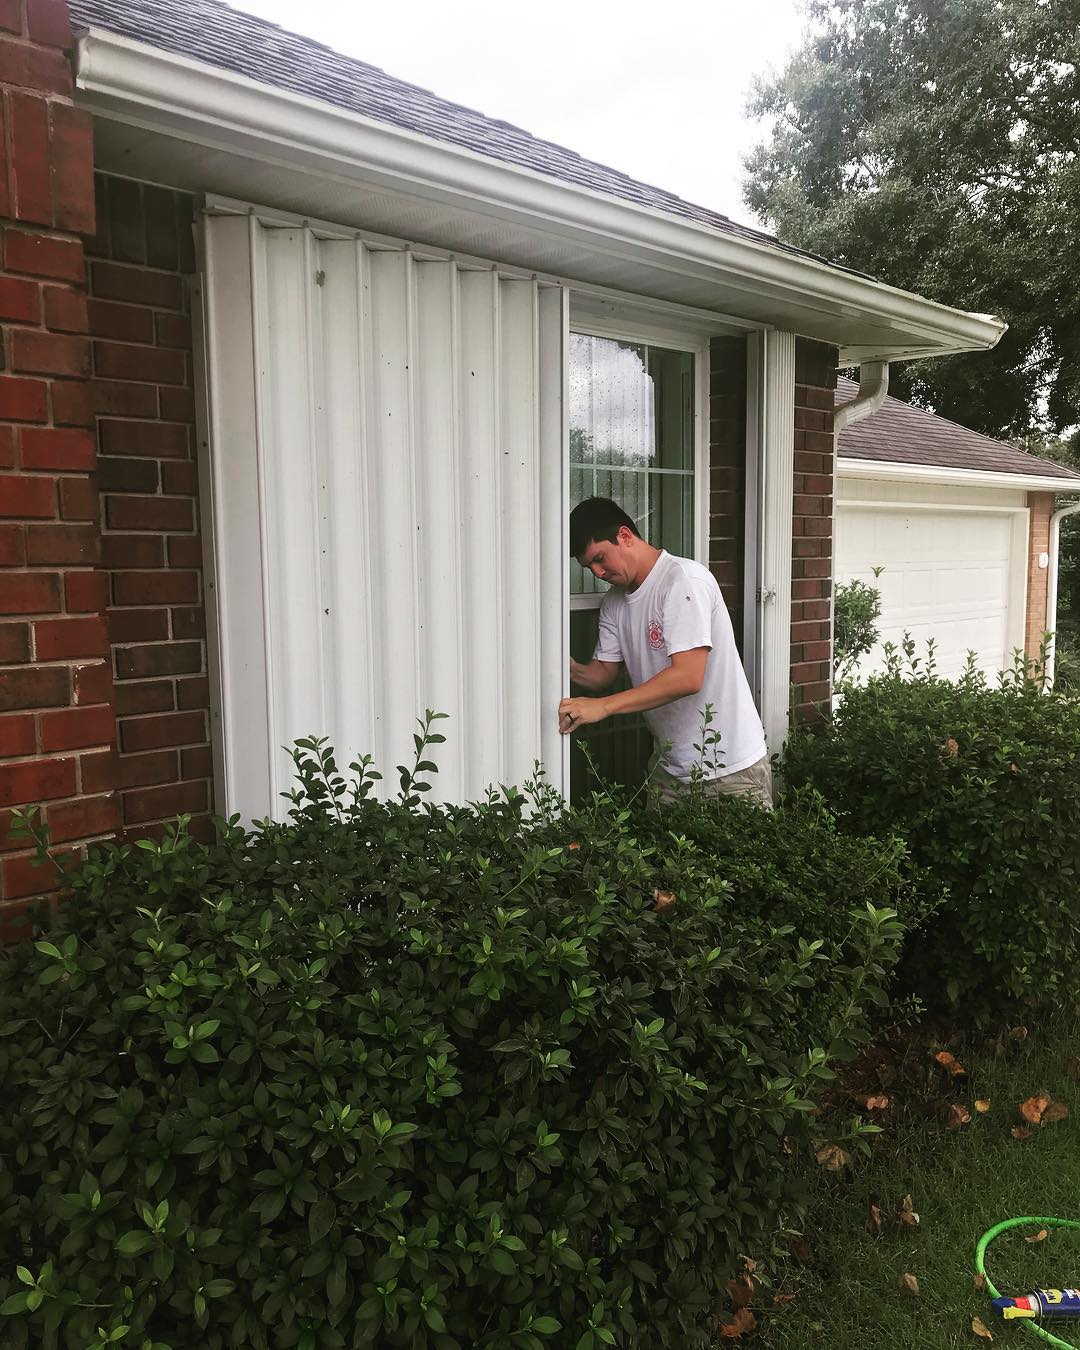 <div class='meta'><div class='origin-logo' data-origin='none'></div><span class='caption-text' data-credit='purenatty/IG'>Hurricane preparations were underway on Tuesday, Oct. 9 in Pensacola, Florida.</span></div>